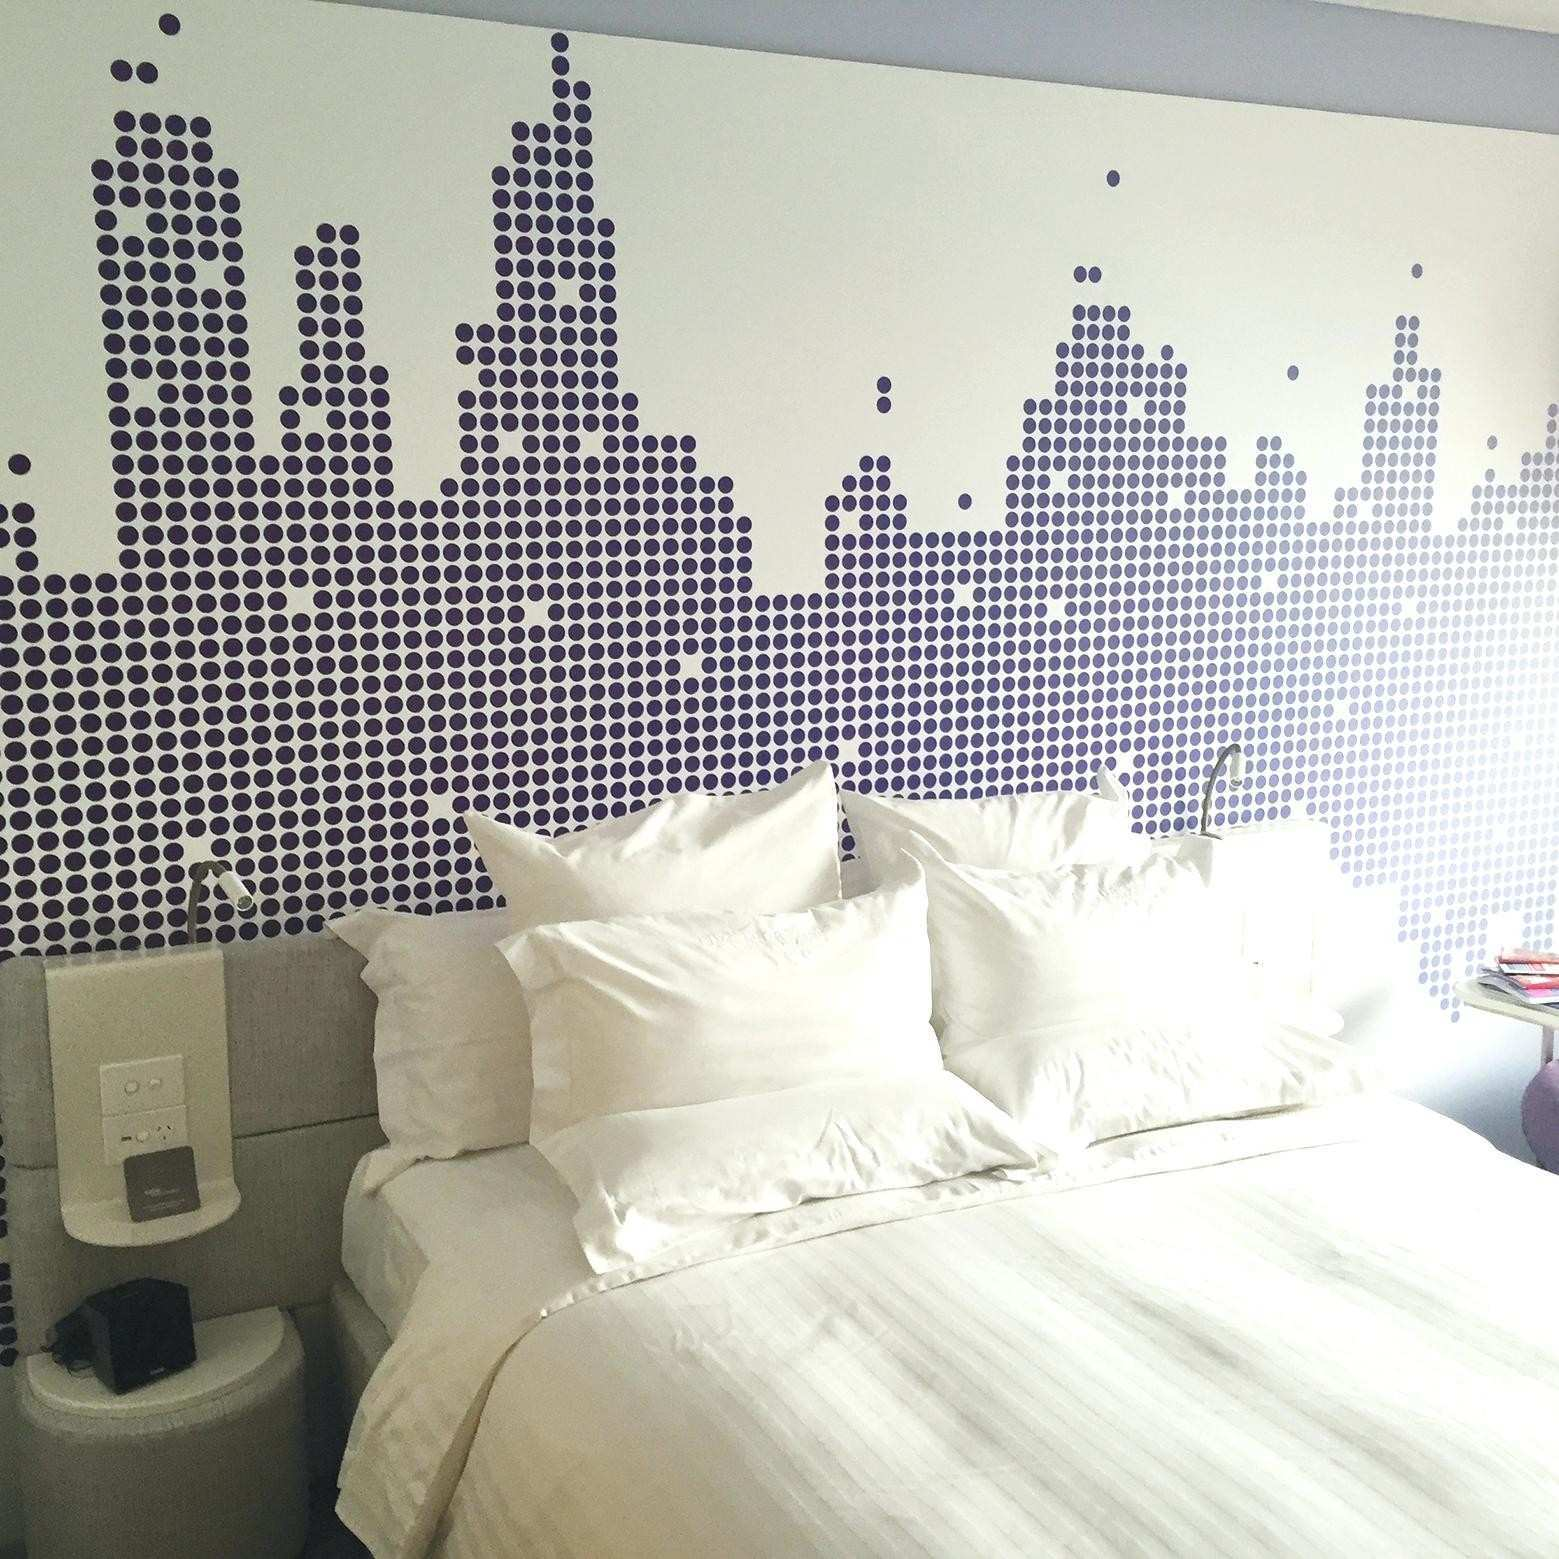 Custom Print Wallpaper Wall Murals For The fice Home Retail